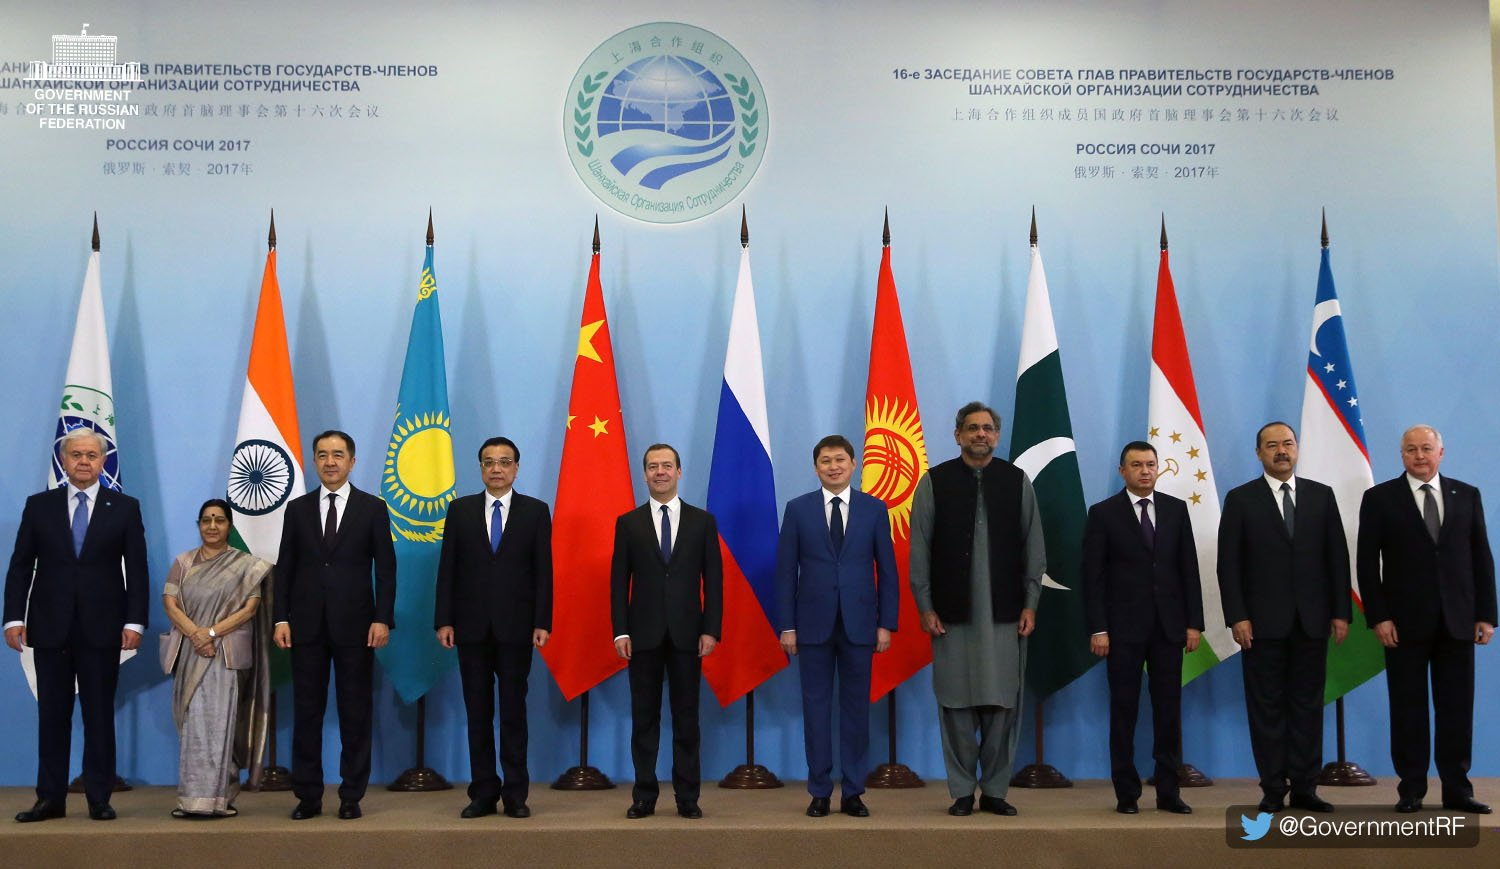 #Sochi hosted a meeting of the #SCO Council of Heads of Government https://t.co/iVEH4DCQ5S https://t.co/qhT8xQadYY